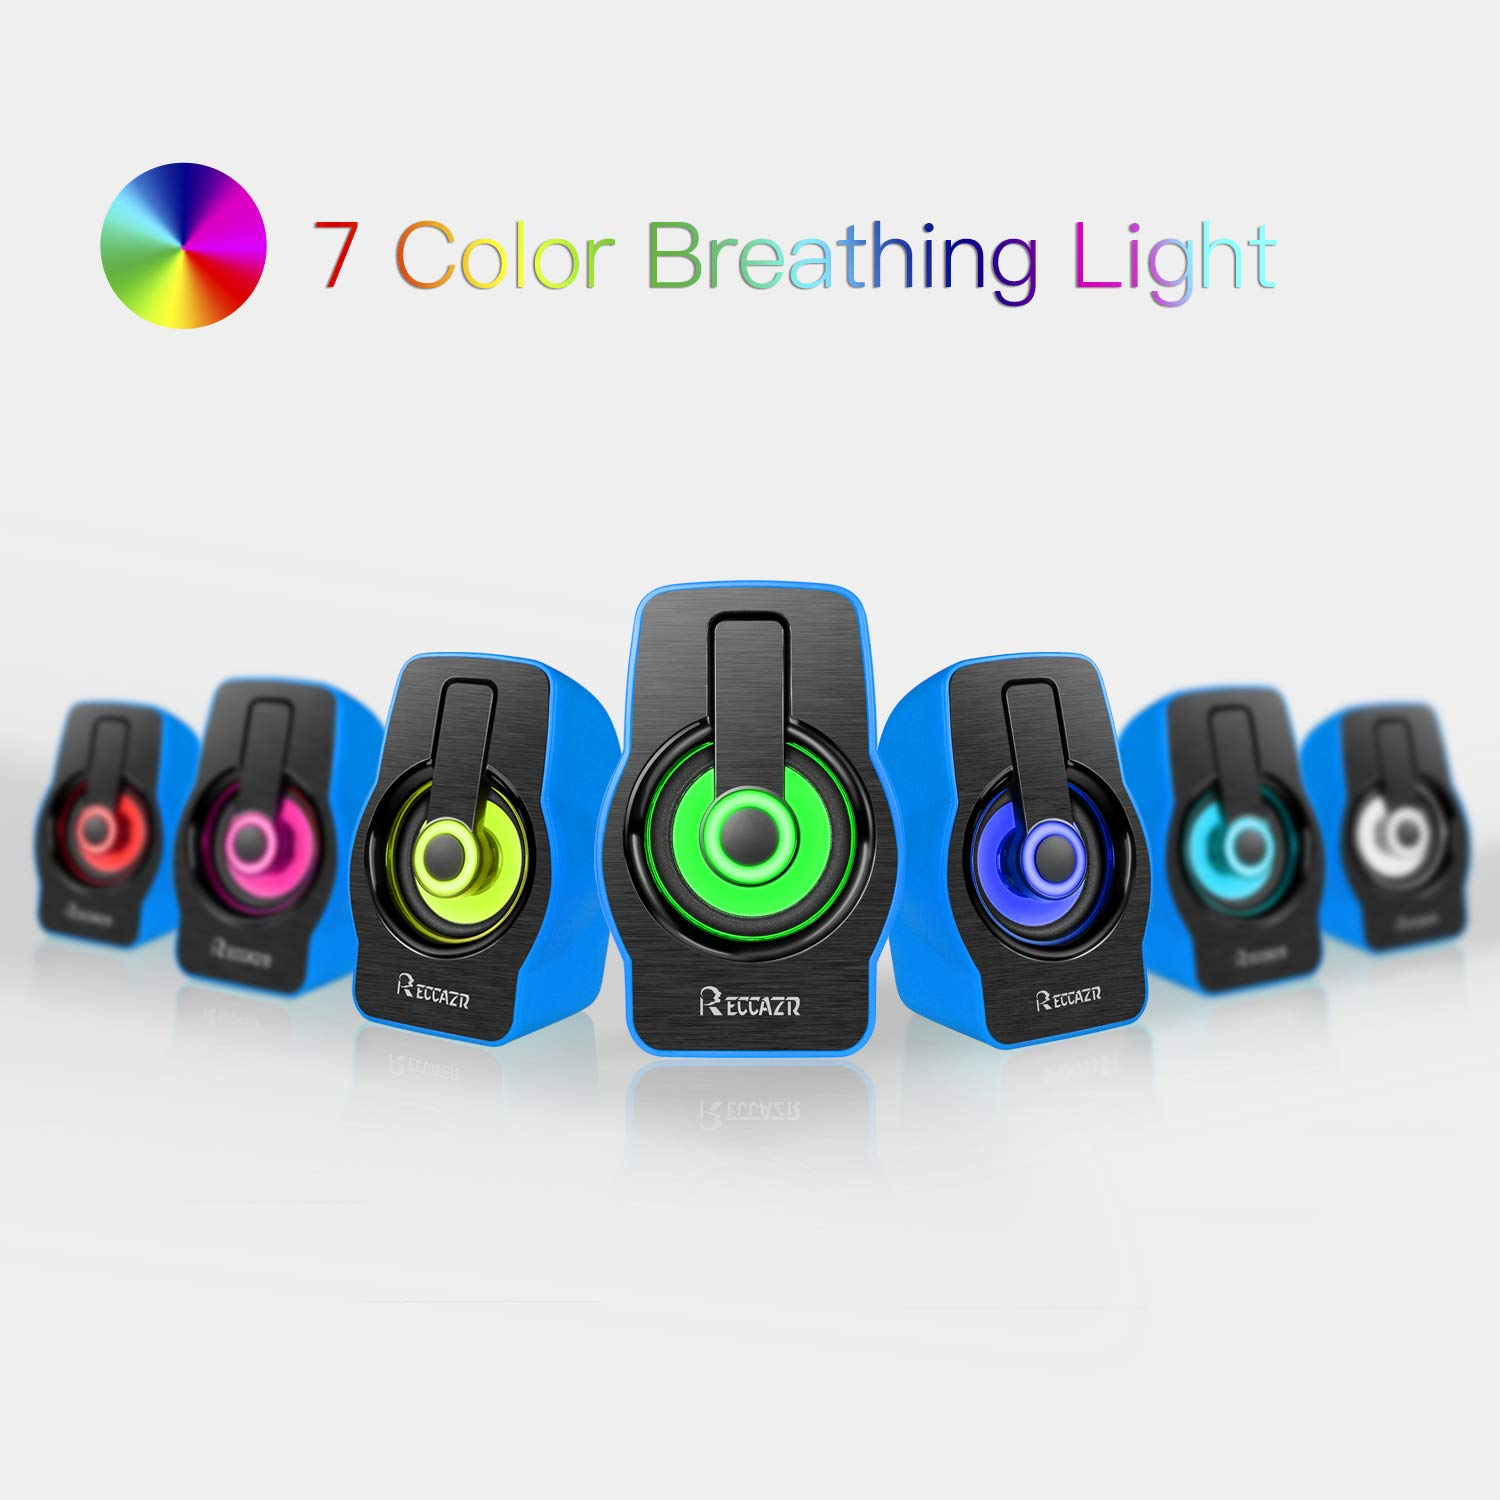 USB Powered Computer Speakers, Reccazr SP2070 Multimedia Stereo Sound Speakers with 7 Colors Breathing Lighting for PC(with3.5mm AUX and PC Input)-Blue